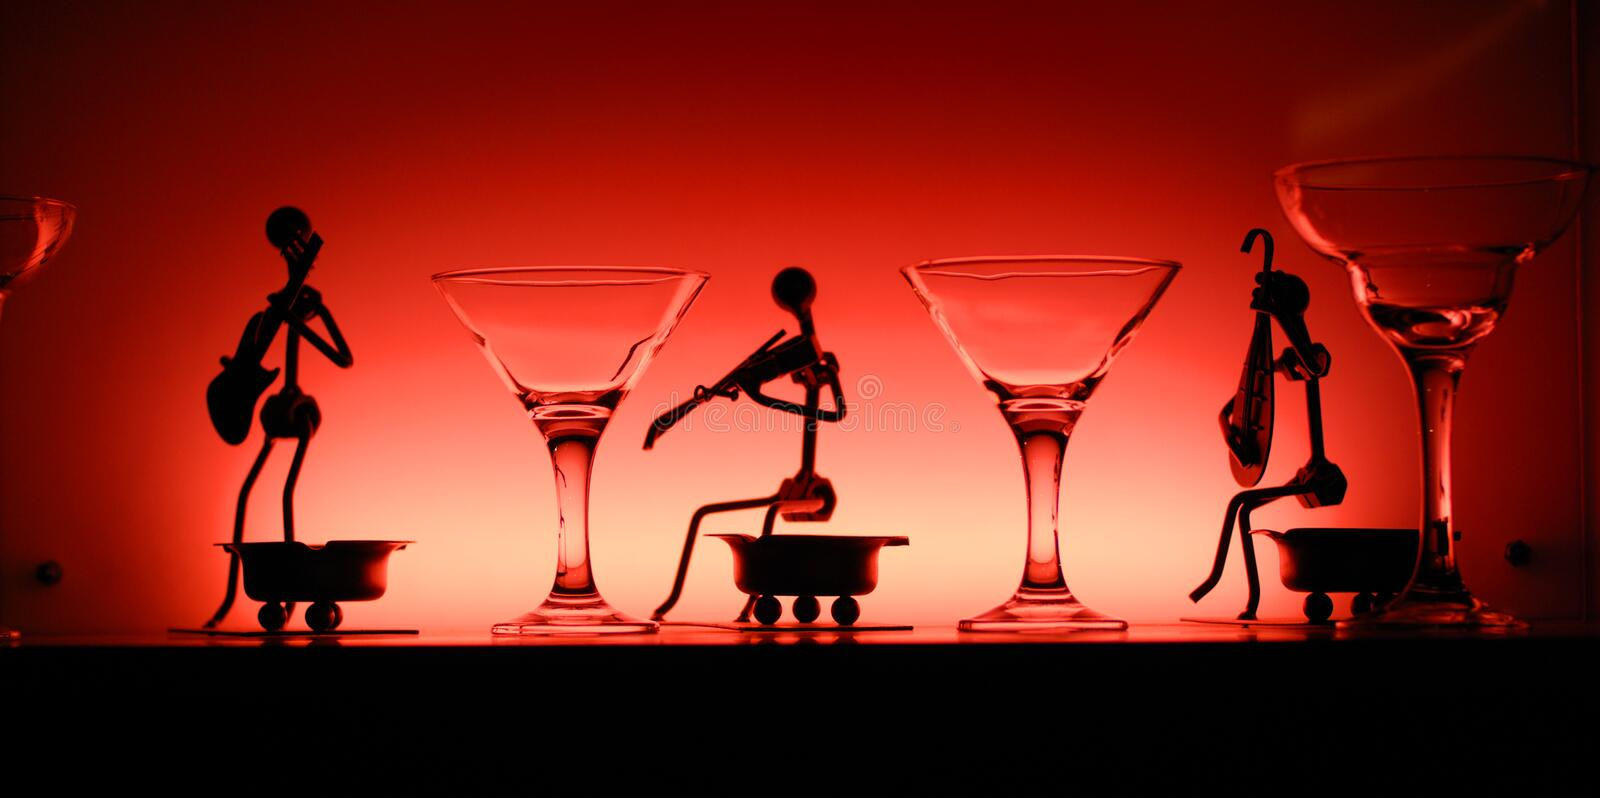 Download Glasses And Statuettes In Red Light Stock Photo - Image: 20716172